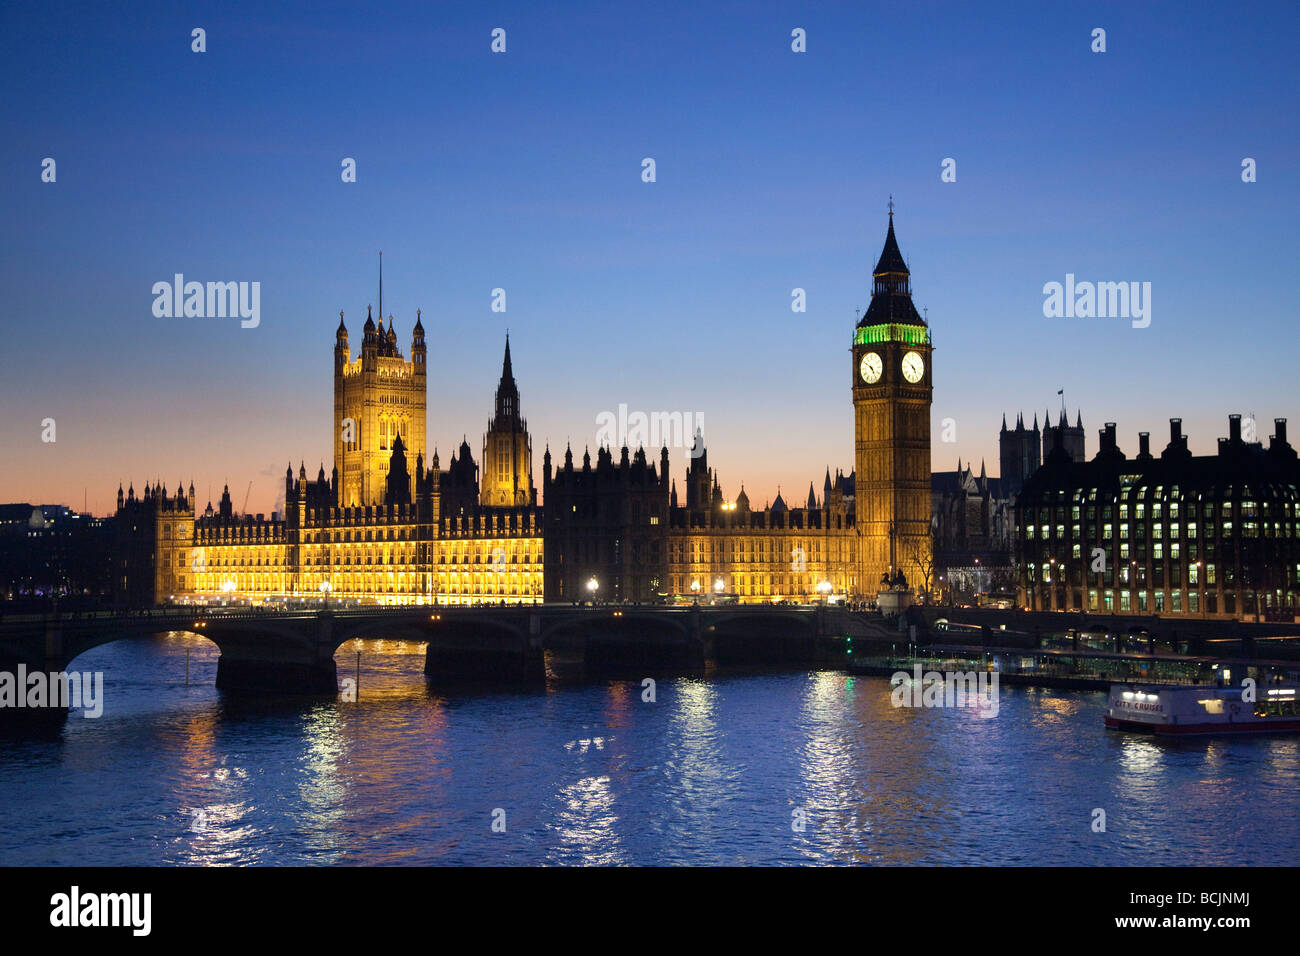 Big Ben & Maisons du Parlement, Londres, Angleterre Photo Stock